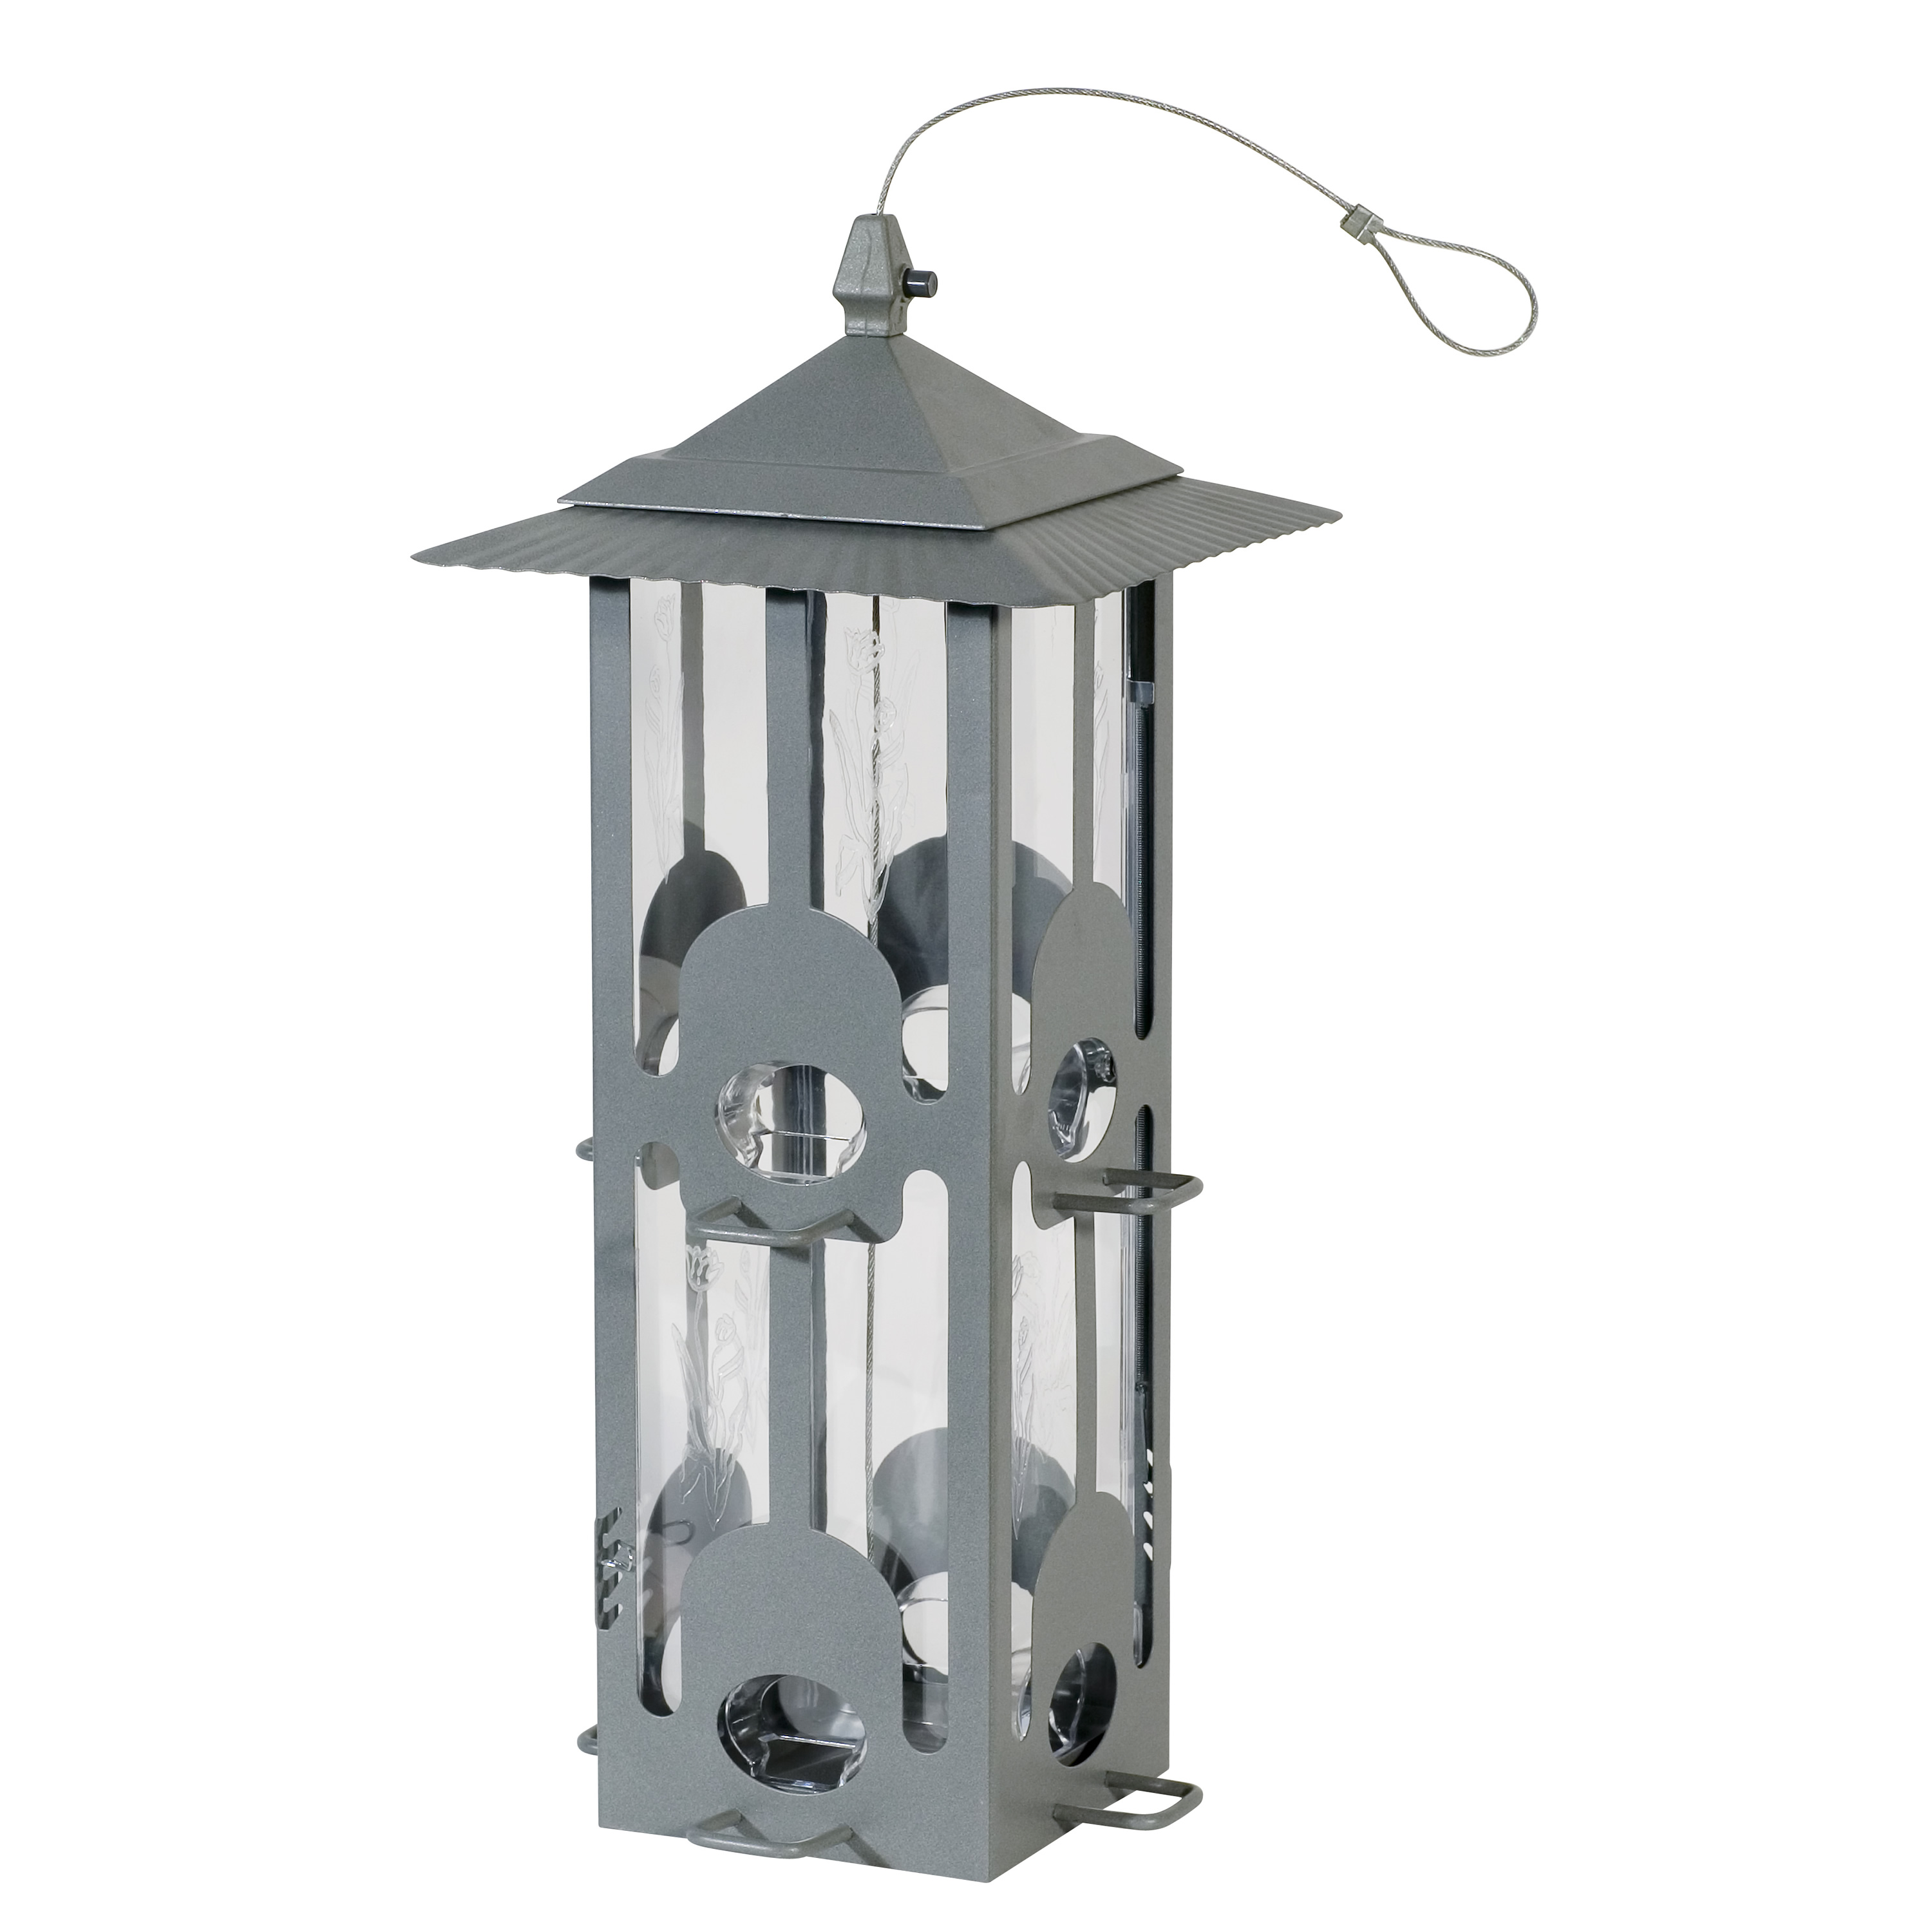 Perky-Pet 6 lb Squirrel-Be-Gone Wild Bird Feeder